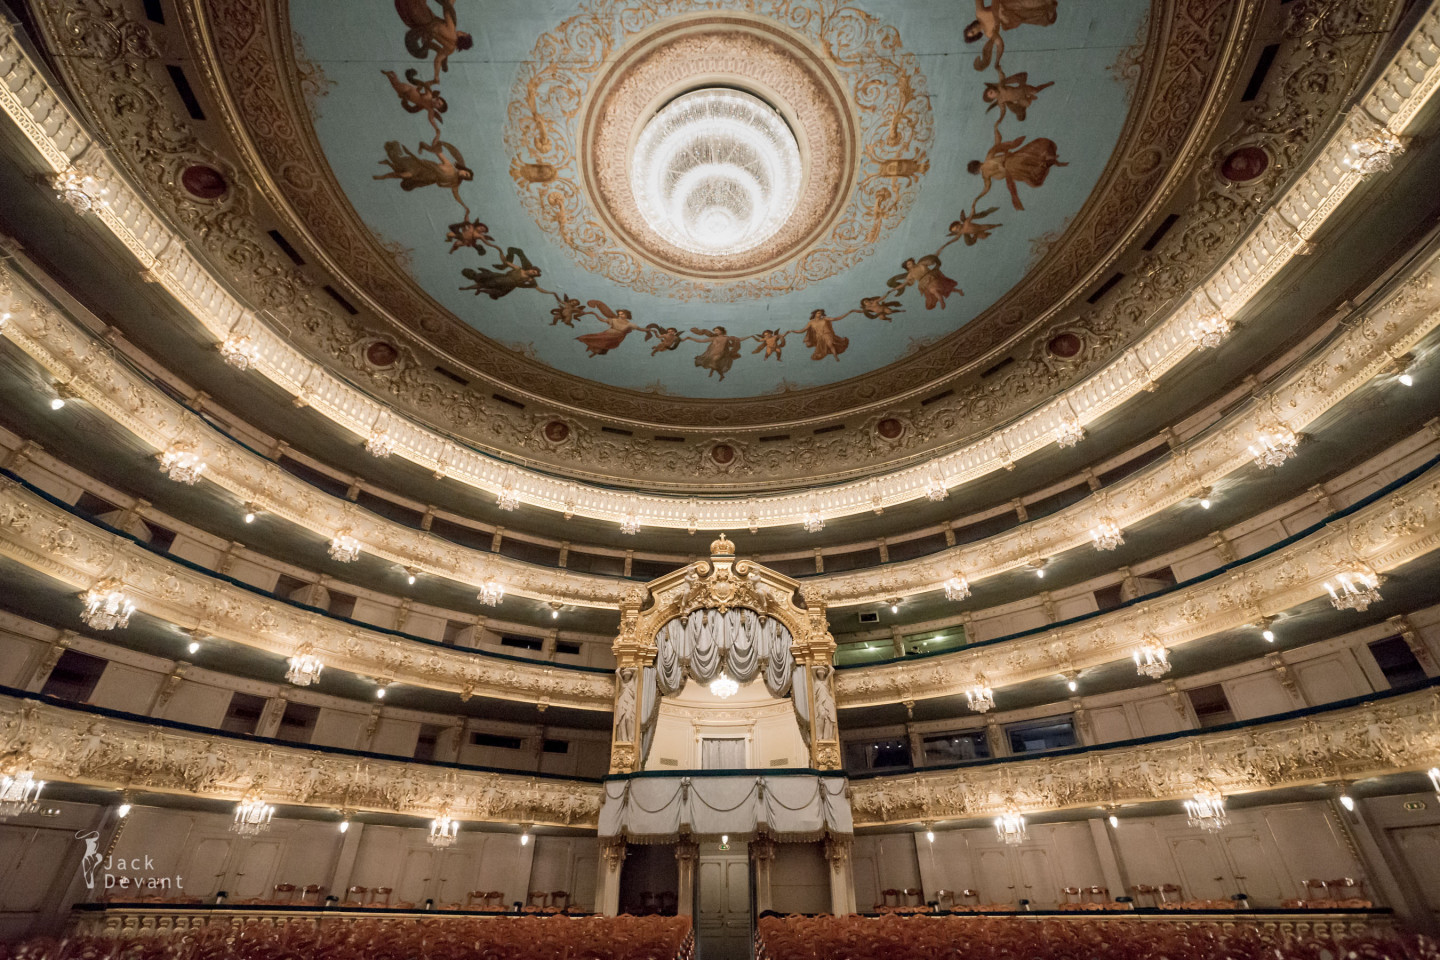 Mariinsky Theatre from the orchestra pit